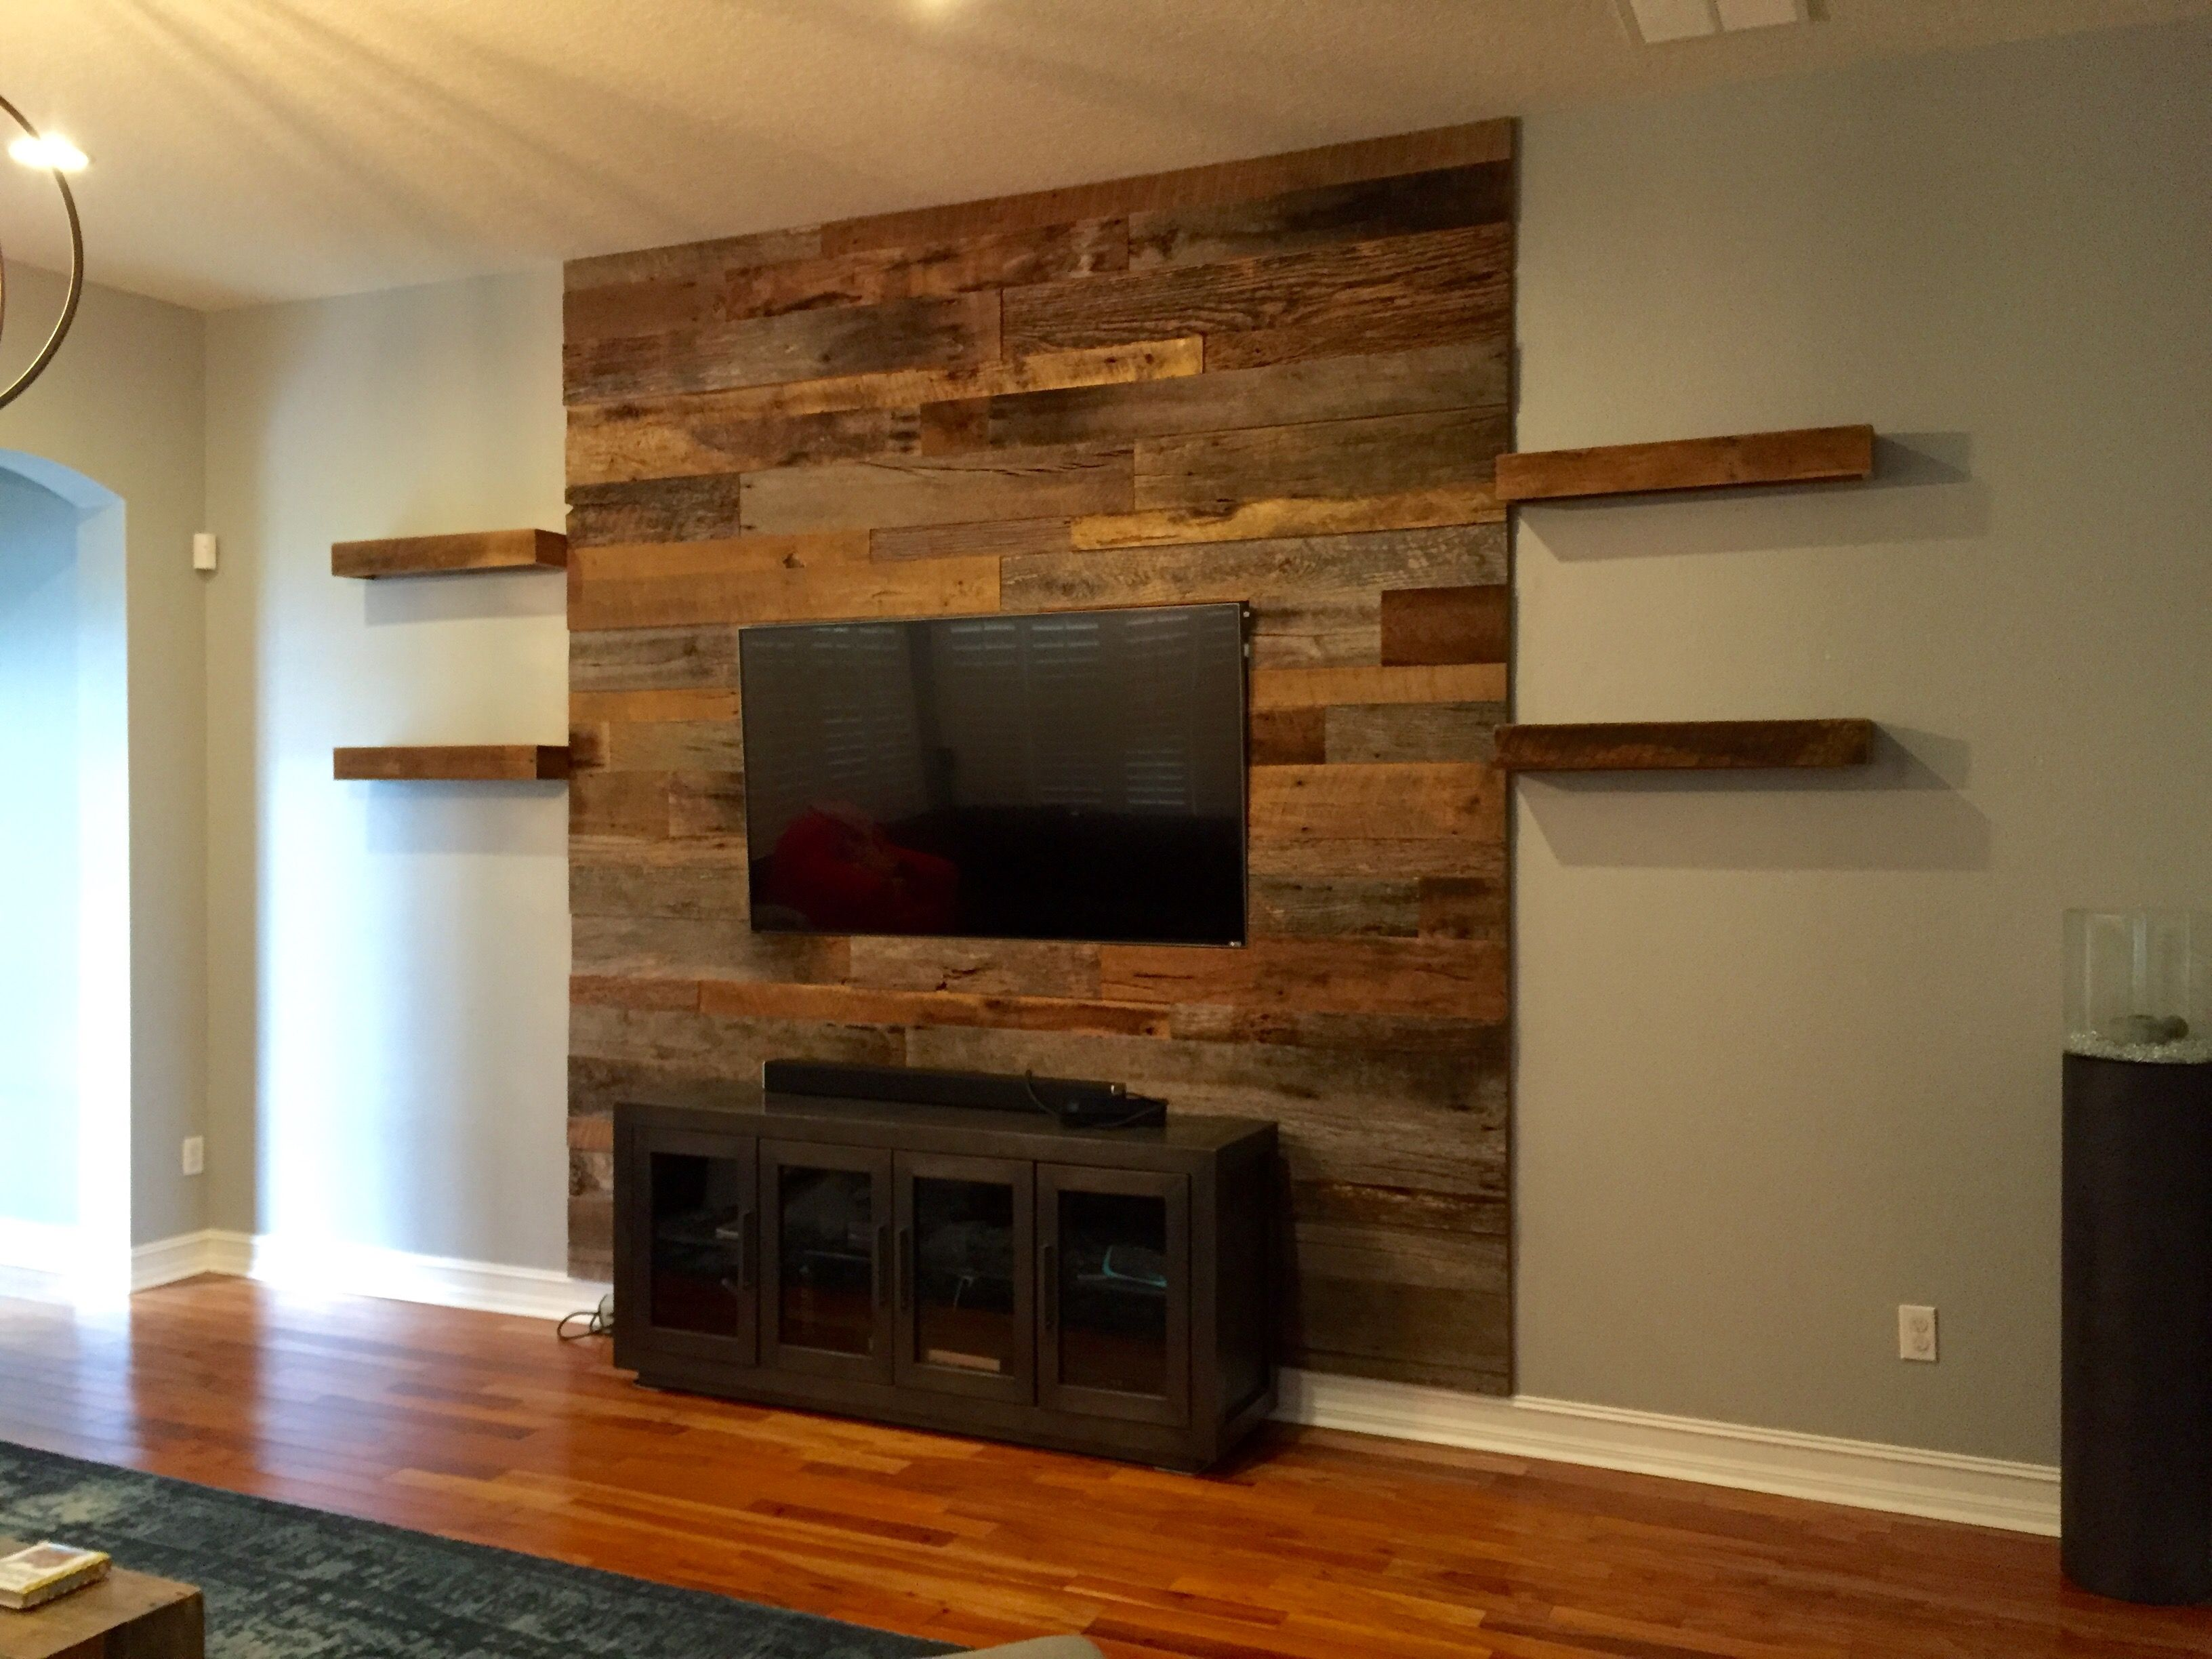 Trevor s Reclaimed Barn Wood Accent Wall with Shelving latest